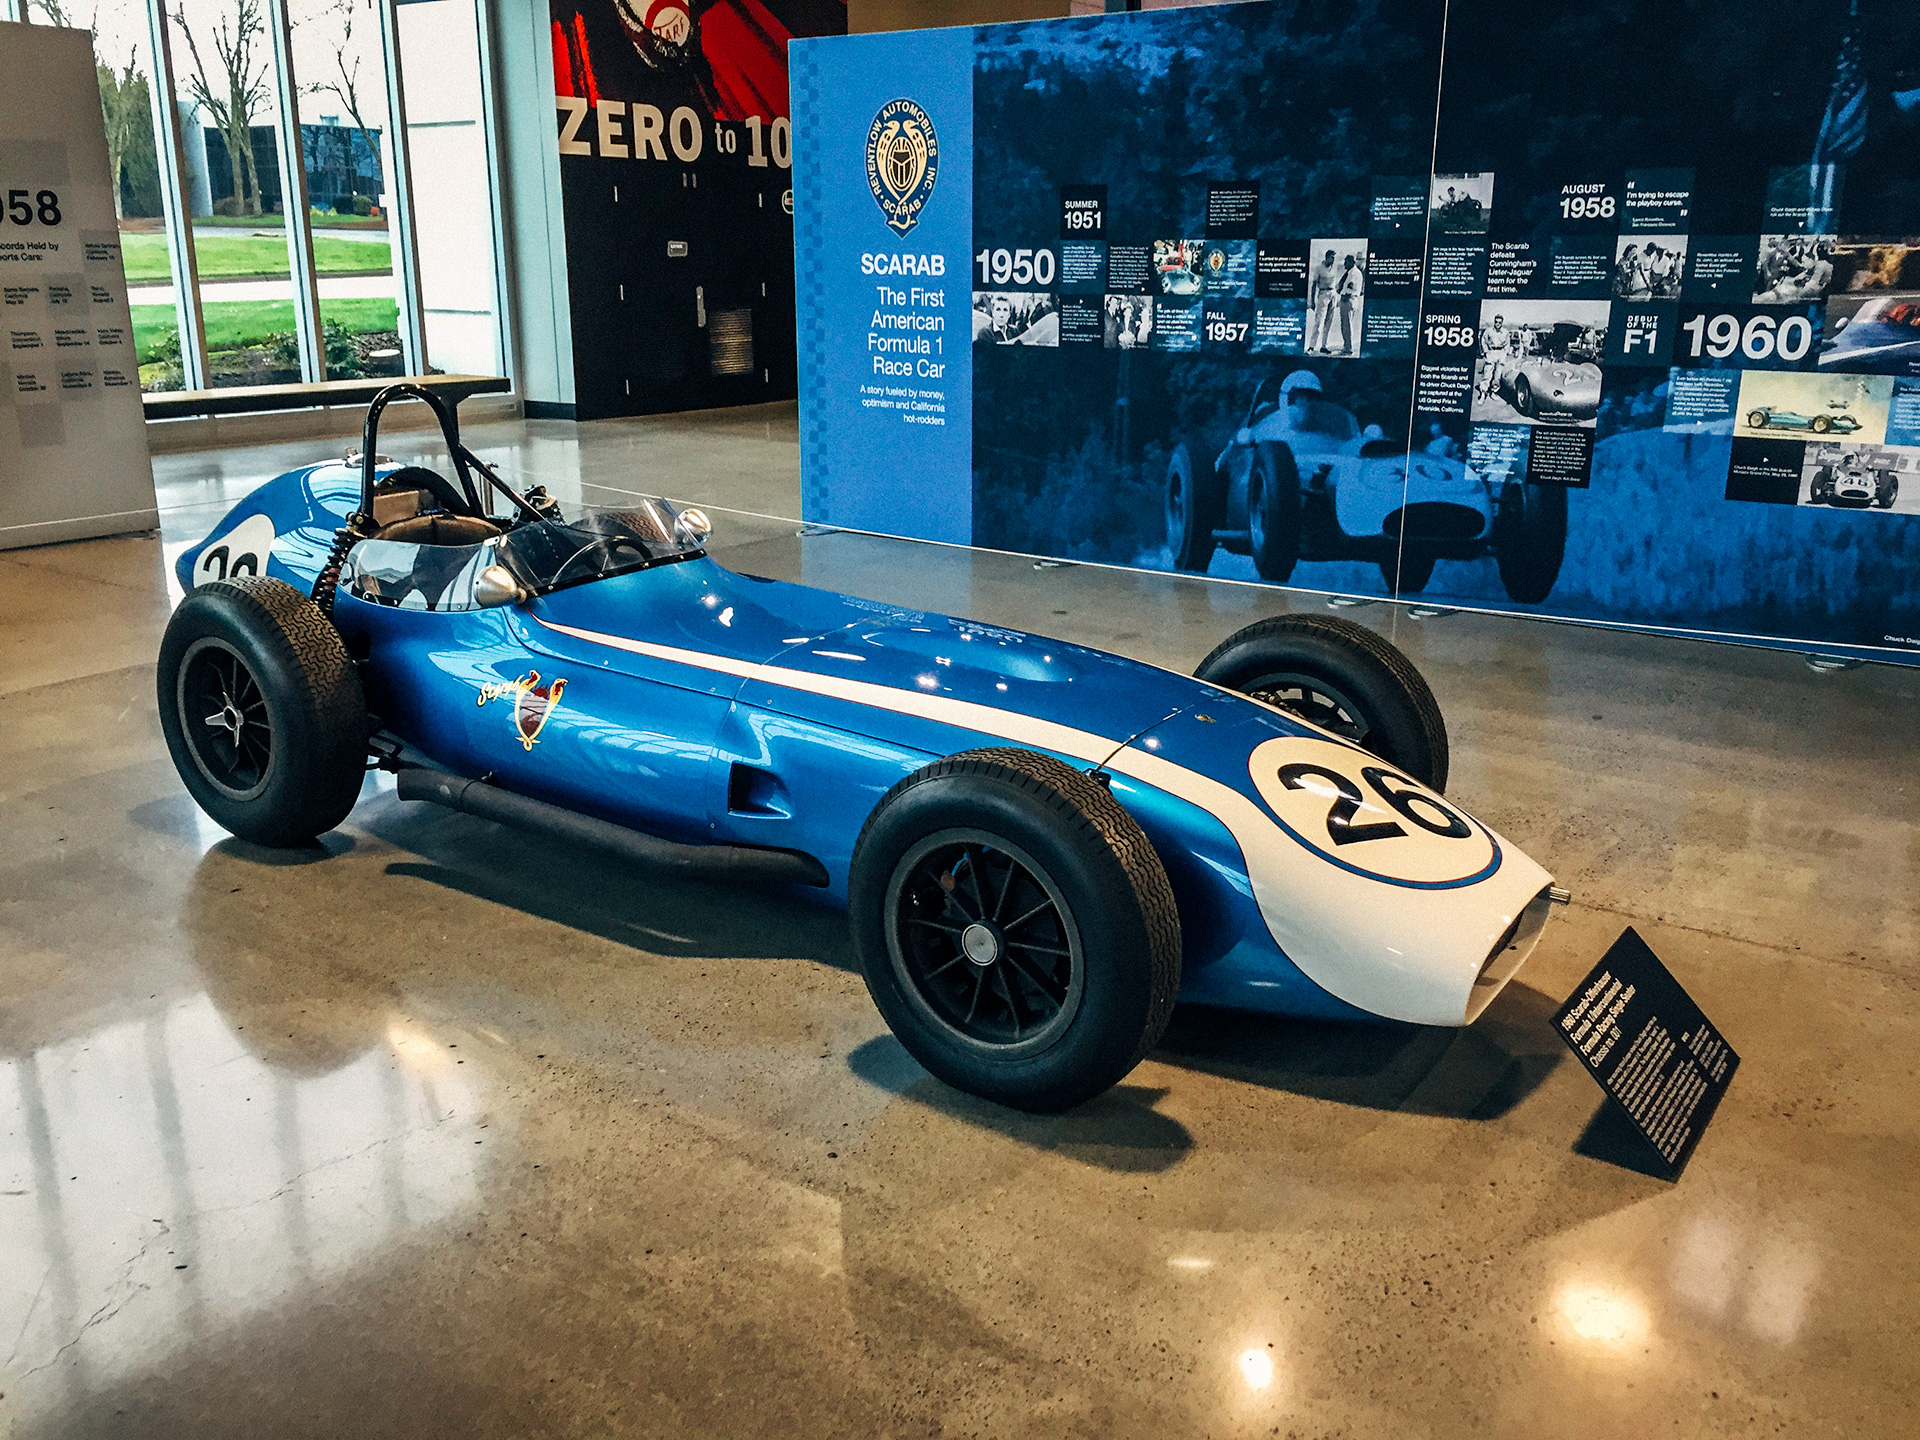 1960 Scarab-Offenhauser Formula One Racing Single-Seater at the World of Speed Museum